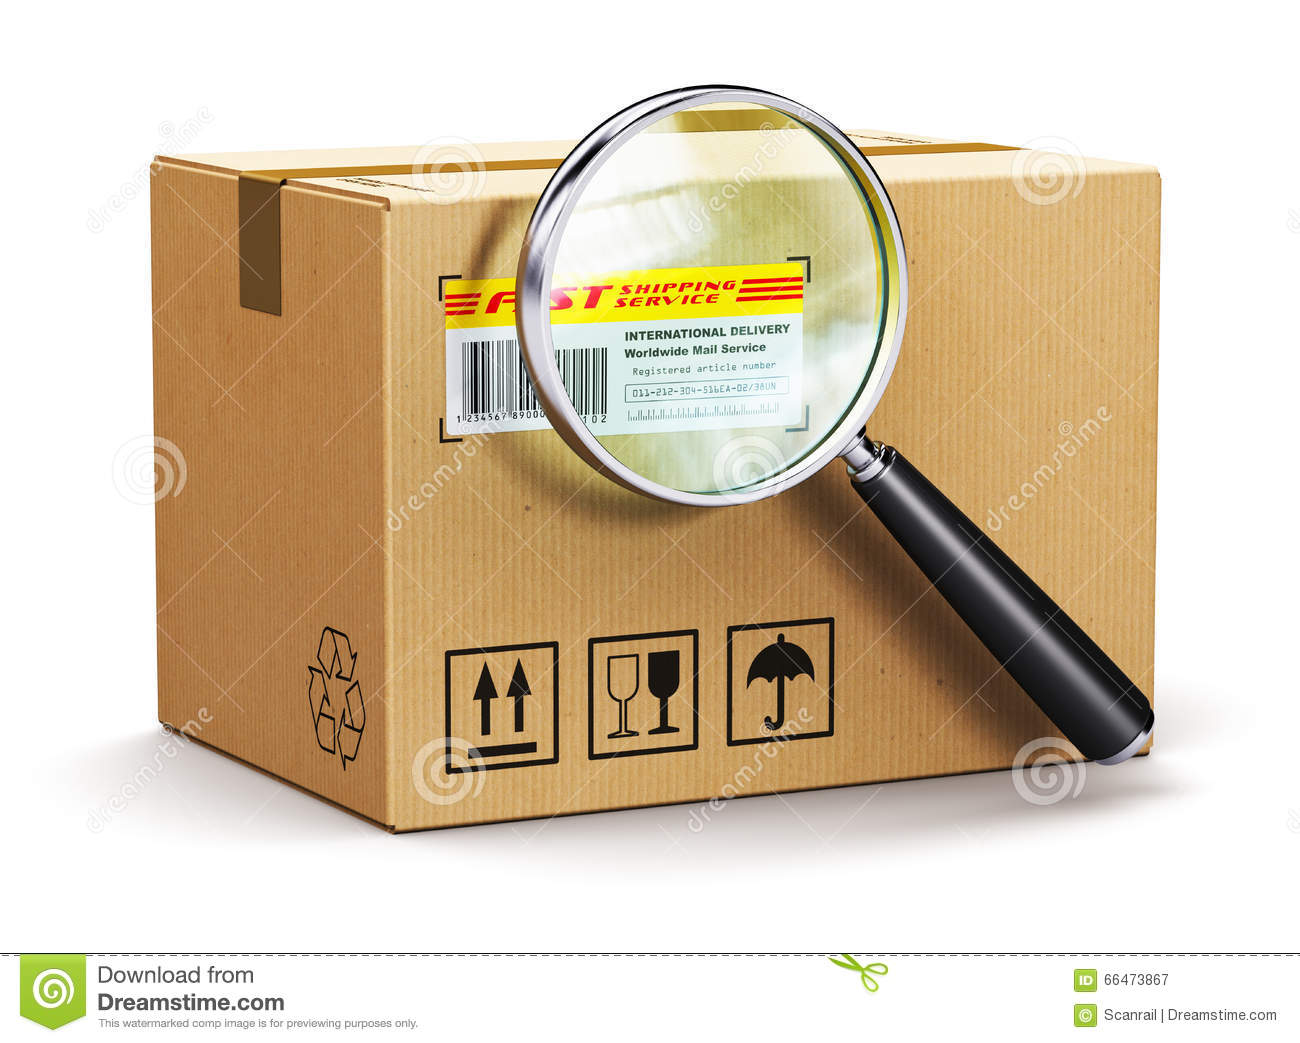 how to get a tracking number for a package